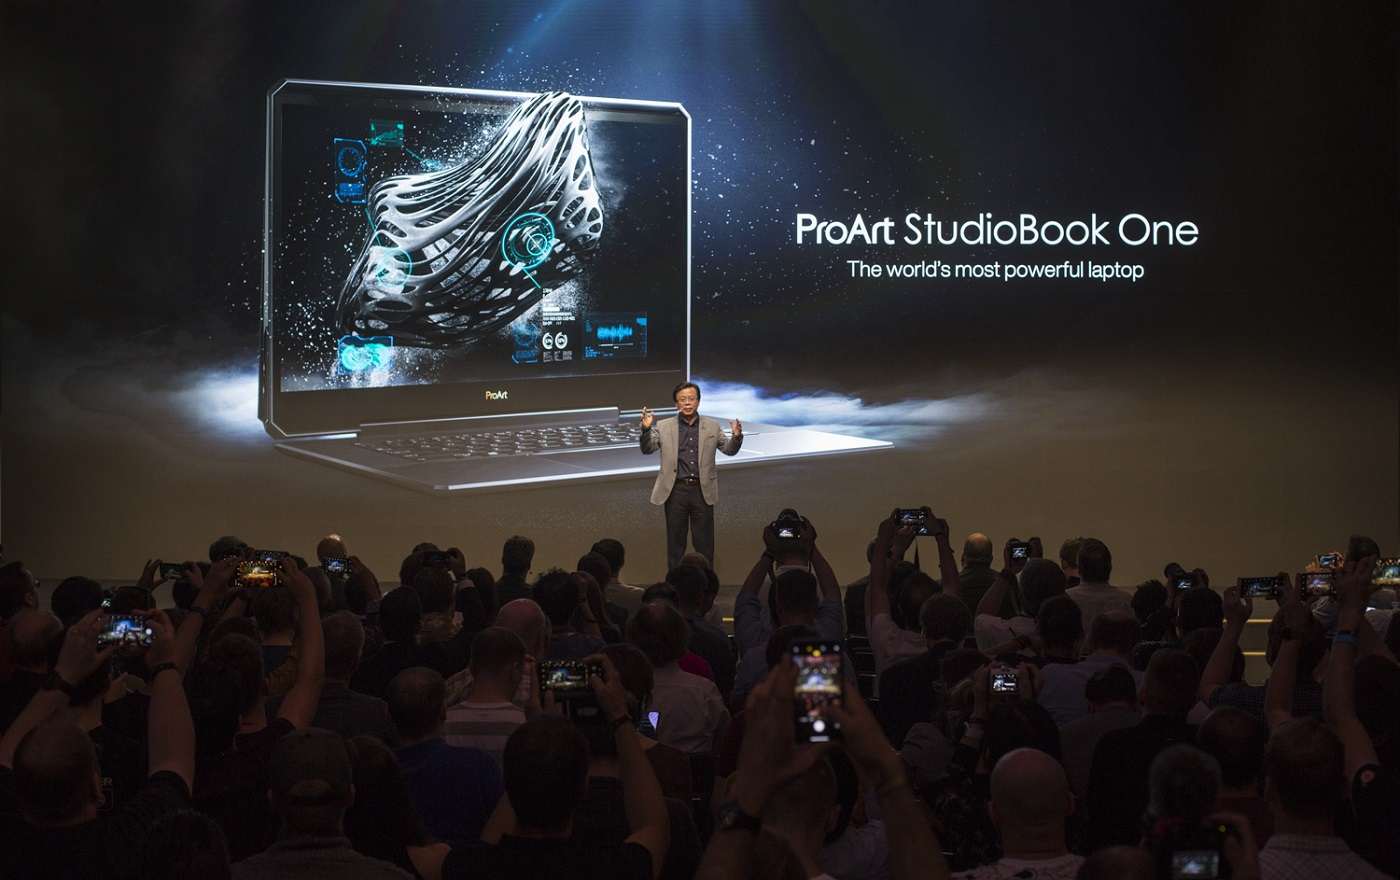 asus-unveils-proart-studiobook-pro-one-the-worlds-most-powerful-laptop-jpg.8061